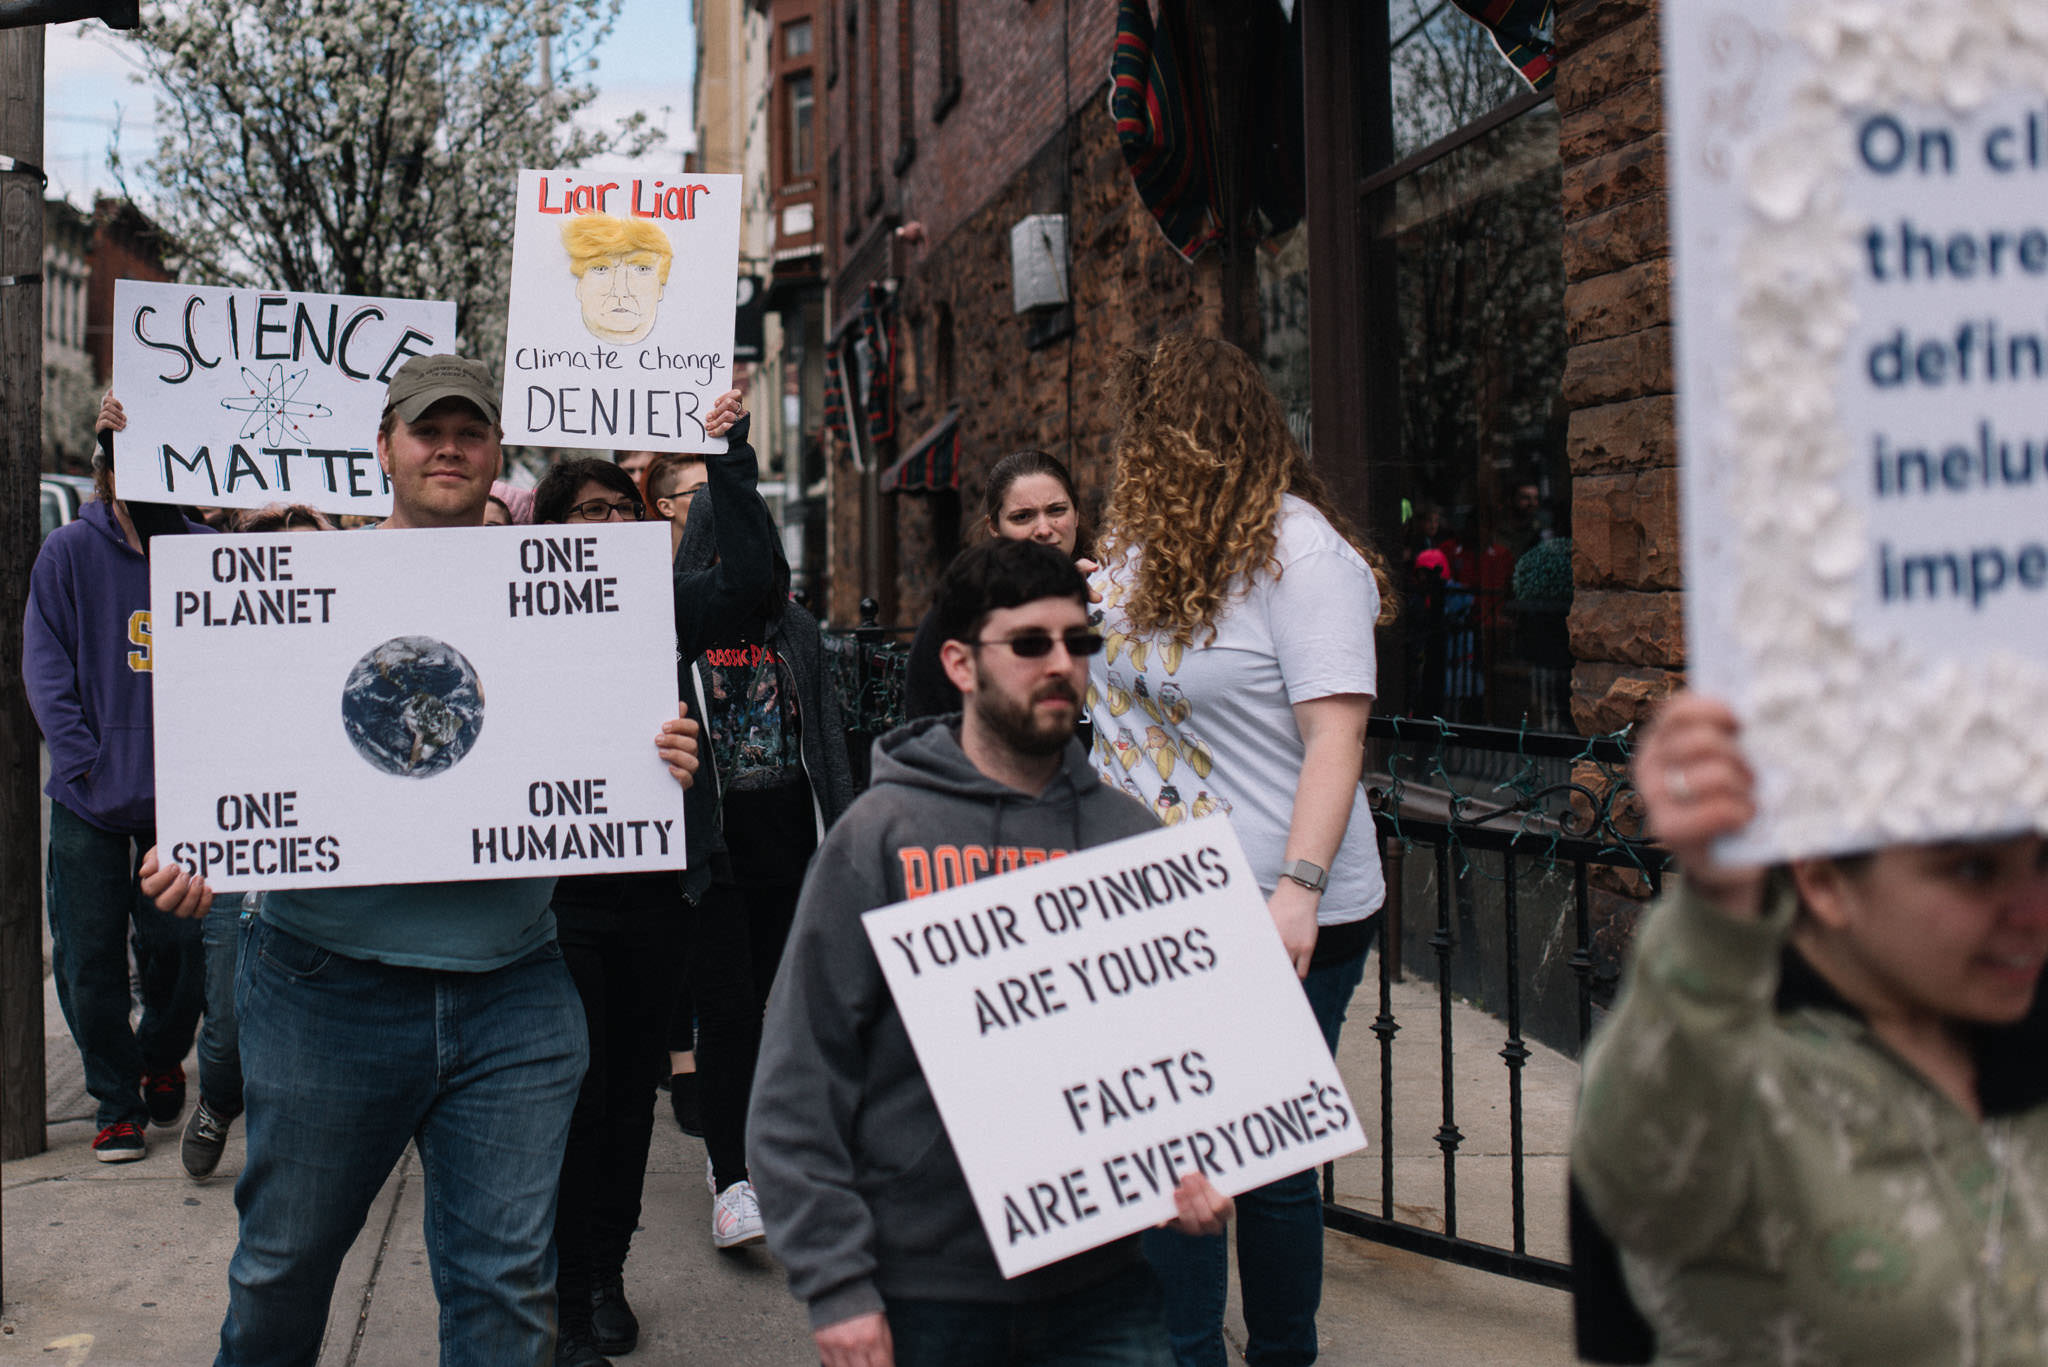 march-for-science-albany-ny-2017-053